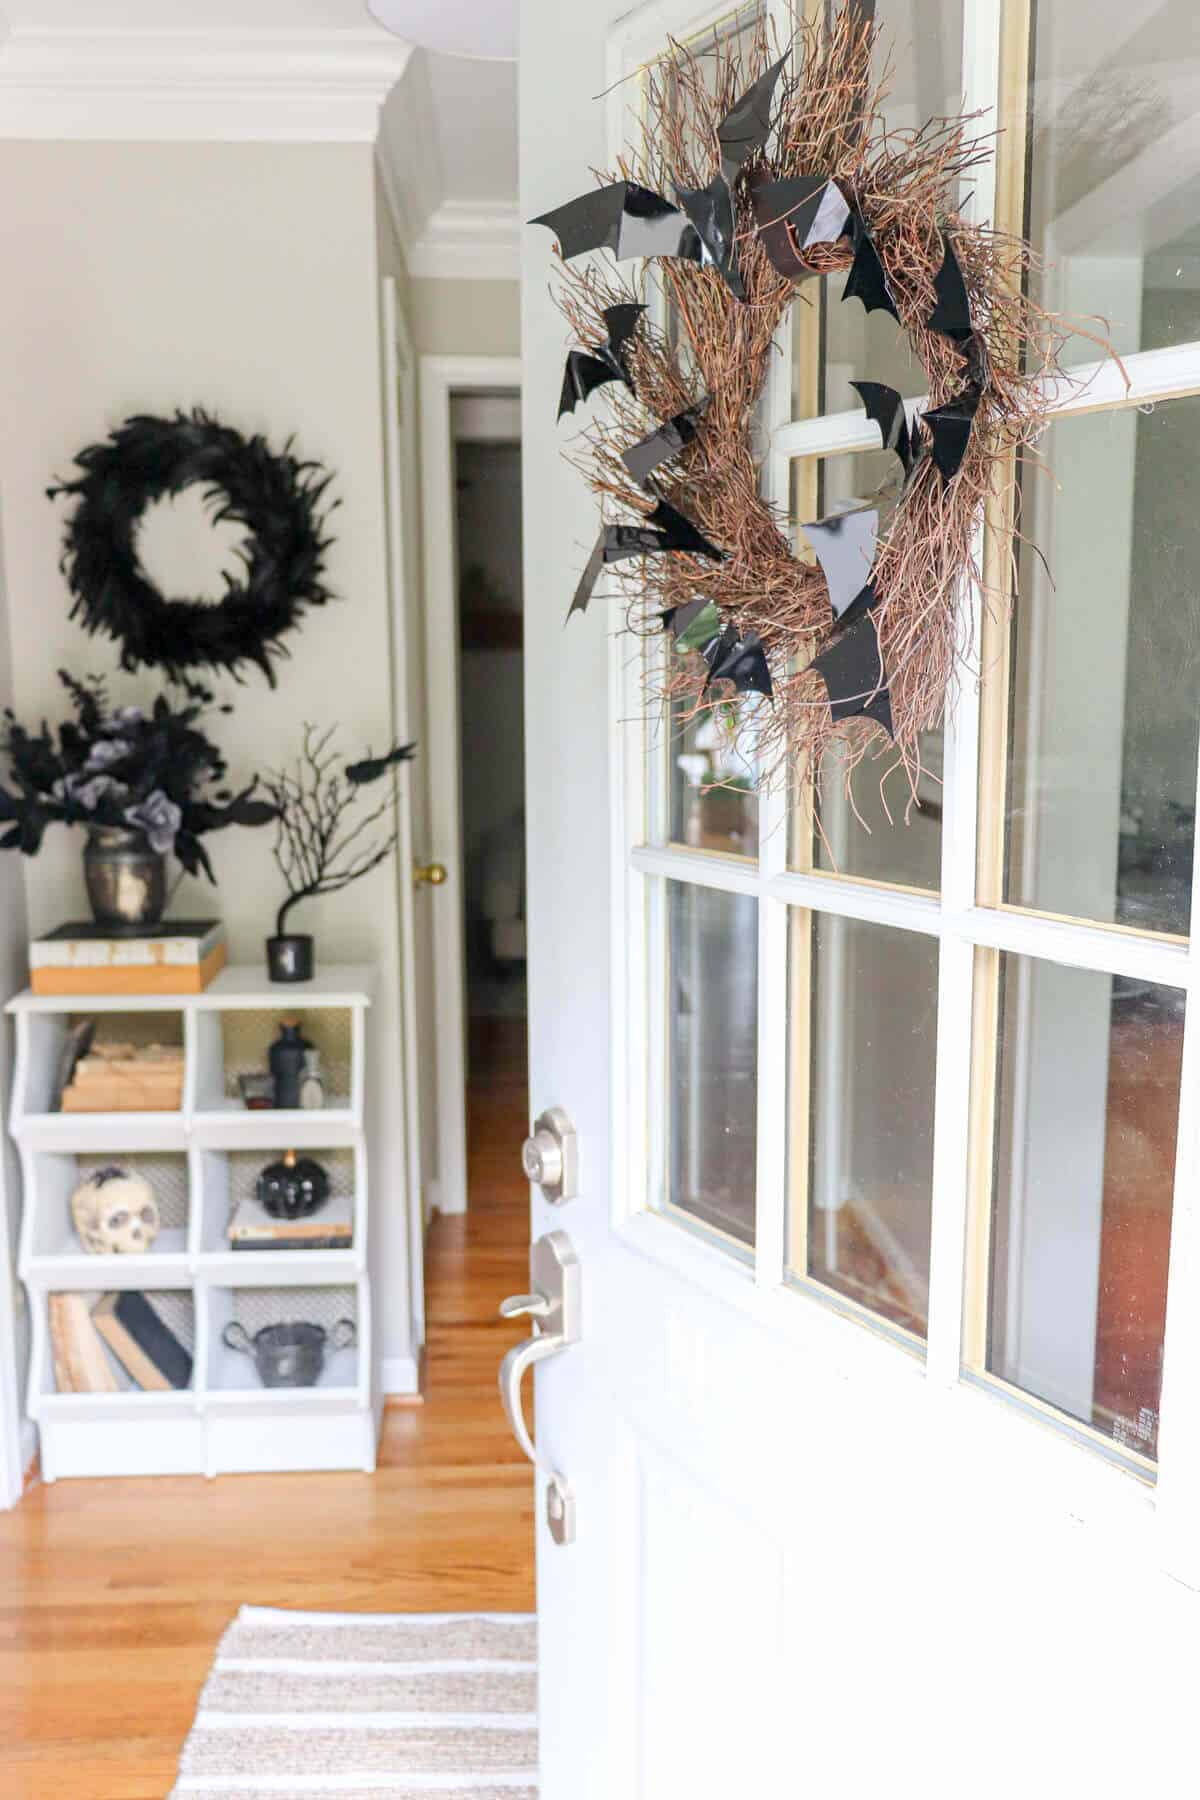 Entryway to home decorated for halloween